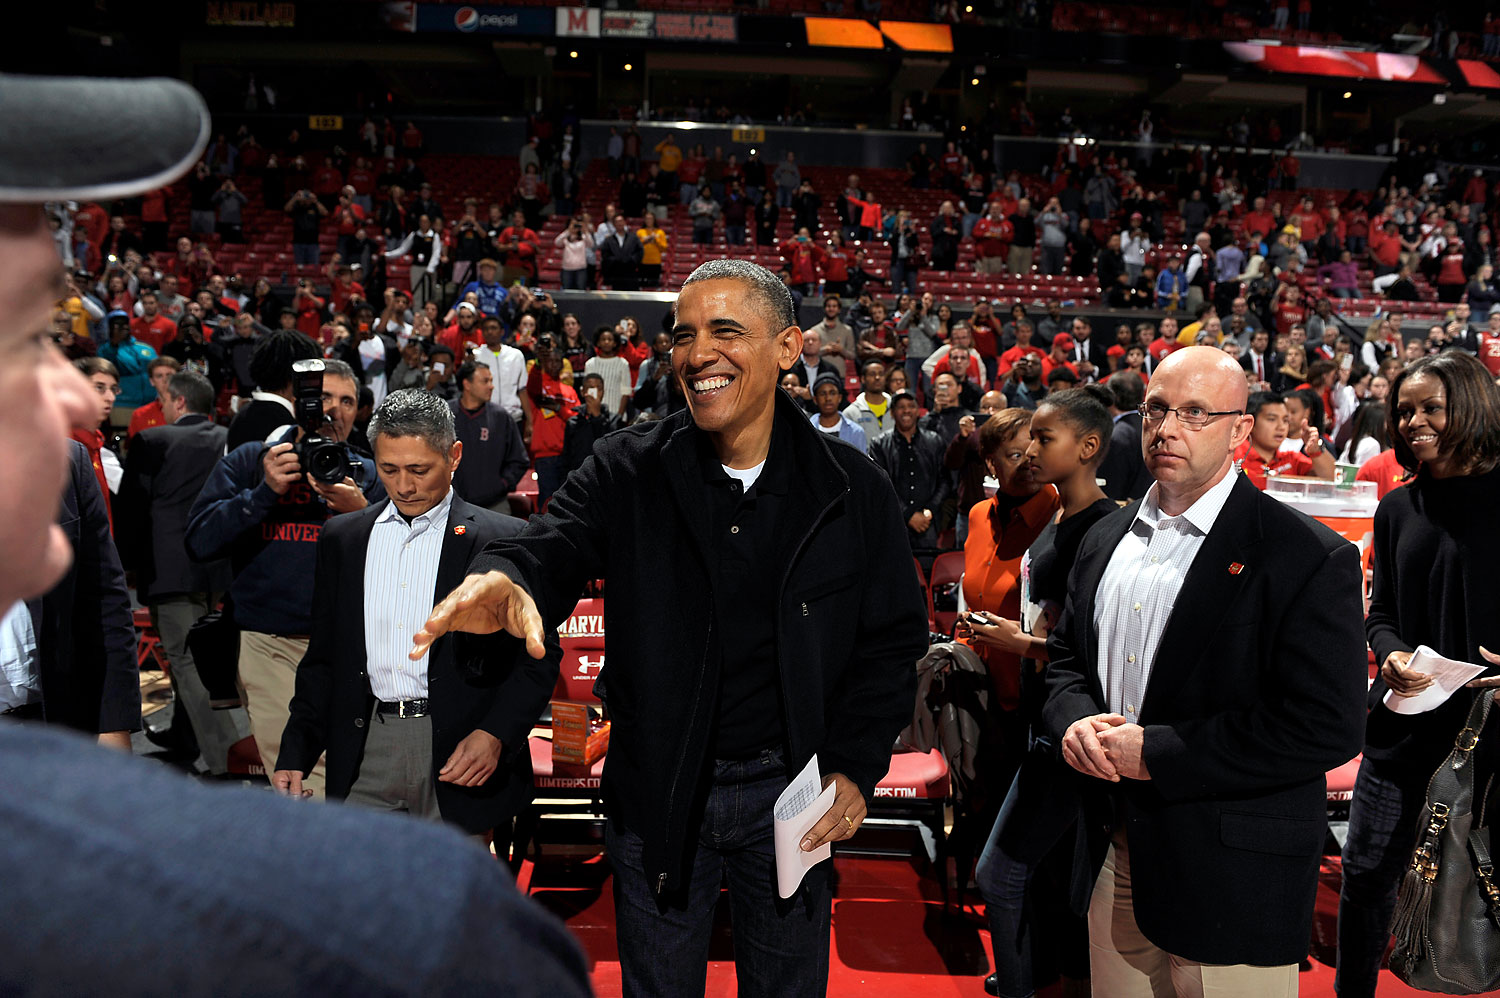 President Obama at a college basketball game between the Oregon State Beavers and the Maryland Terrapins at the Comcast Center on Nov. 17, 2013 in College Park, Maryland.